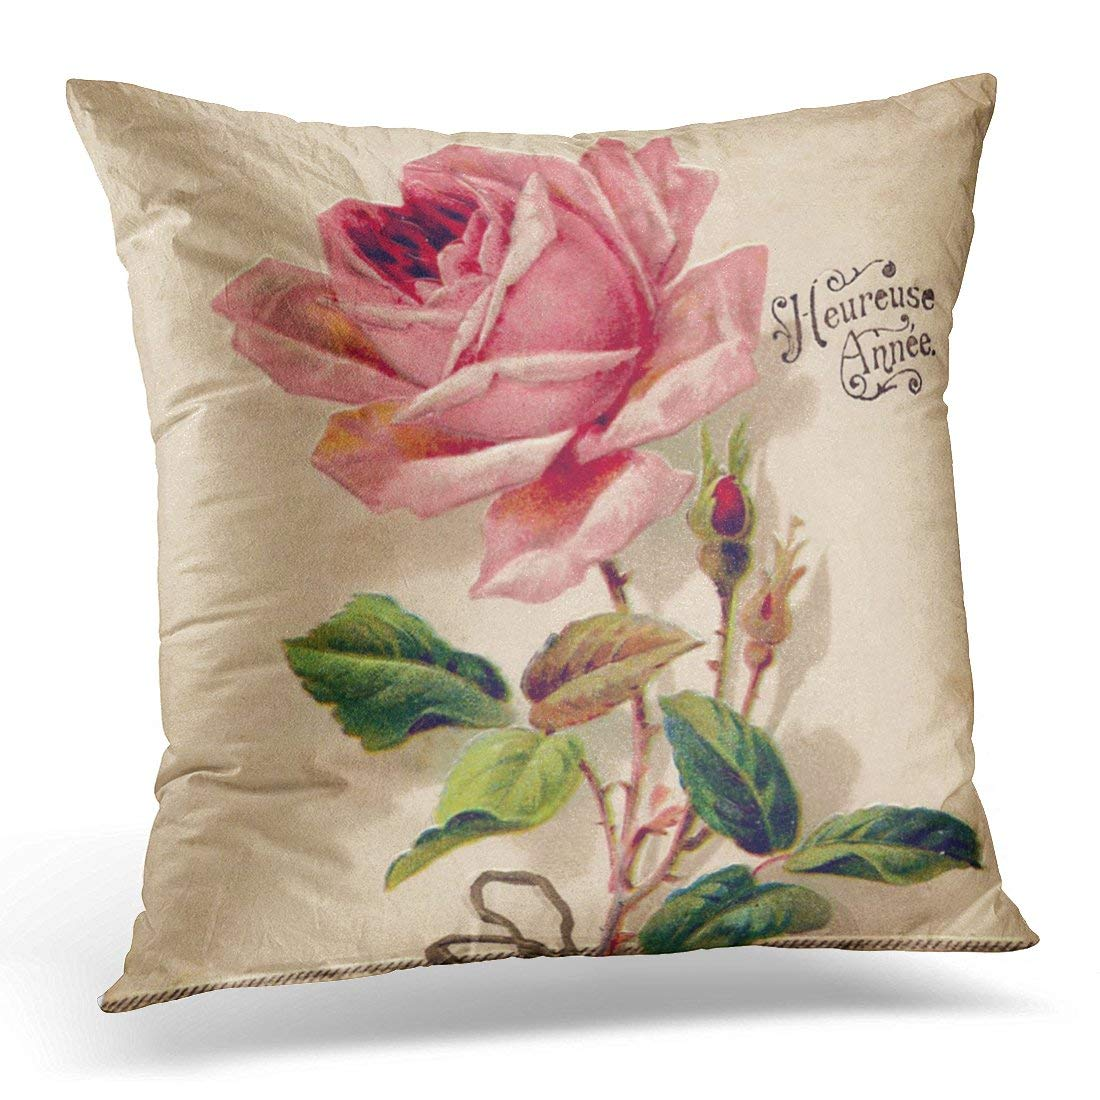 WOPOP Flower Nature Pink Vintage Floral Girly Pillowcase Cover 20x20 inch